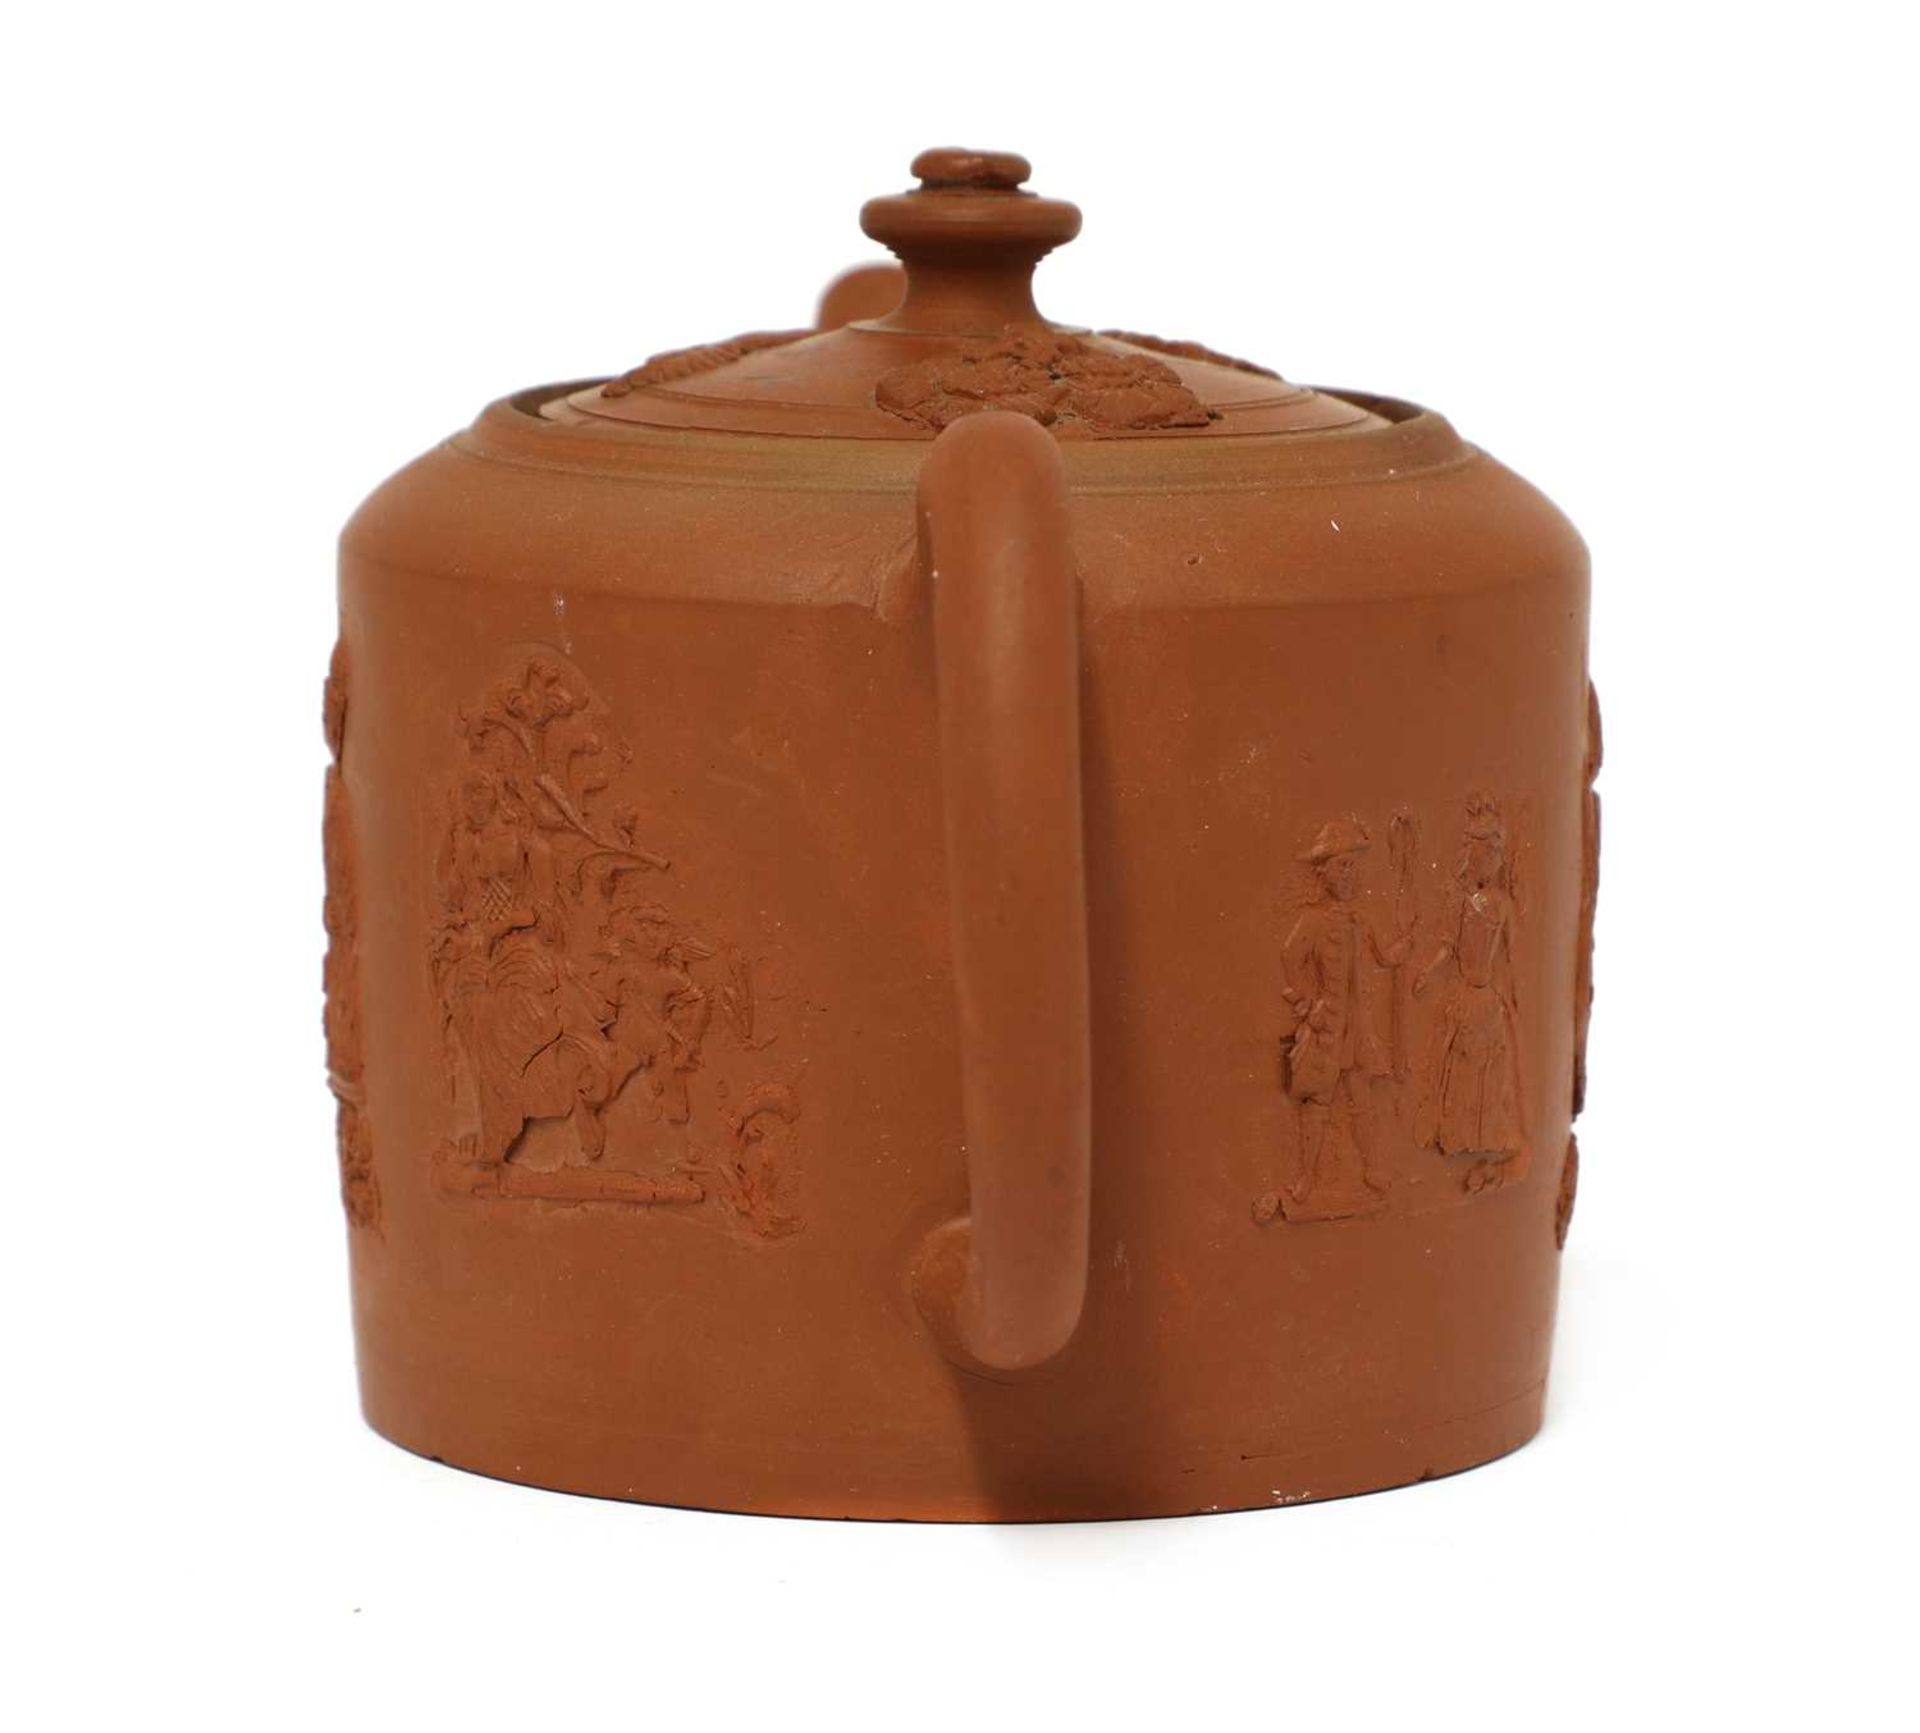 A Staffordshire redware small cylindrical teapot and cover, - Image 2 of 4